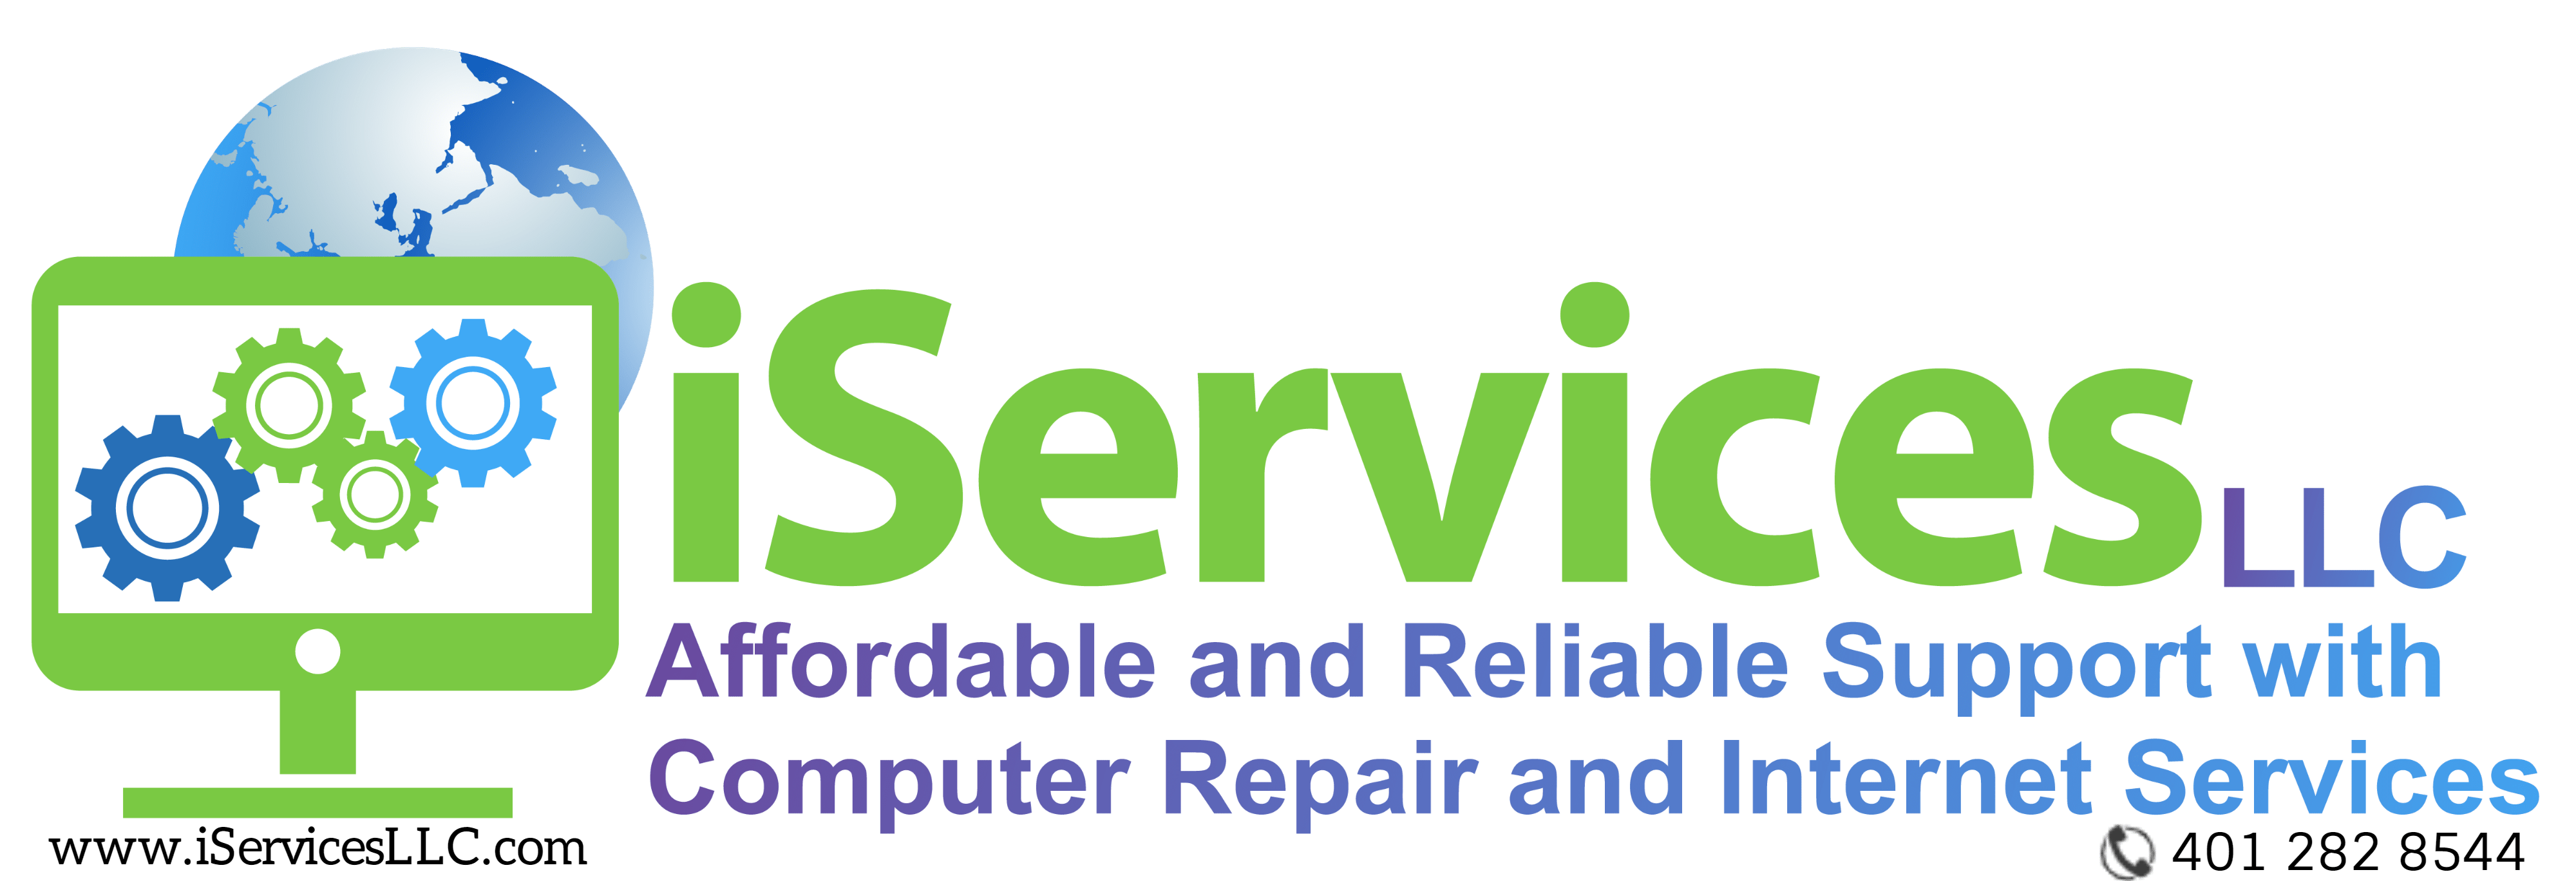 Pre_iServices_001